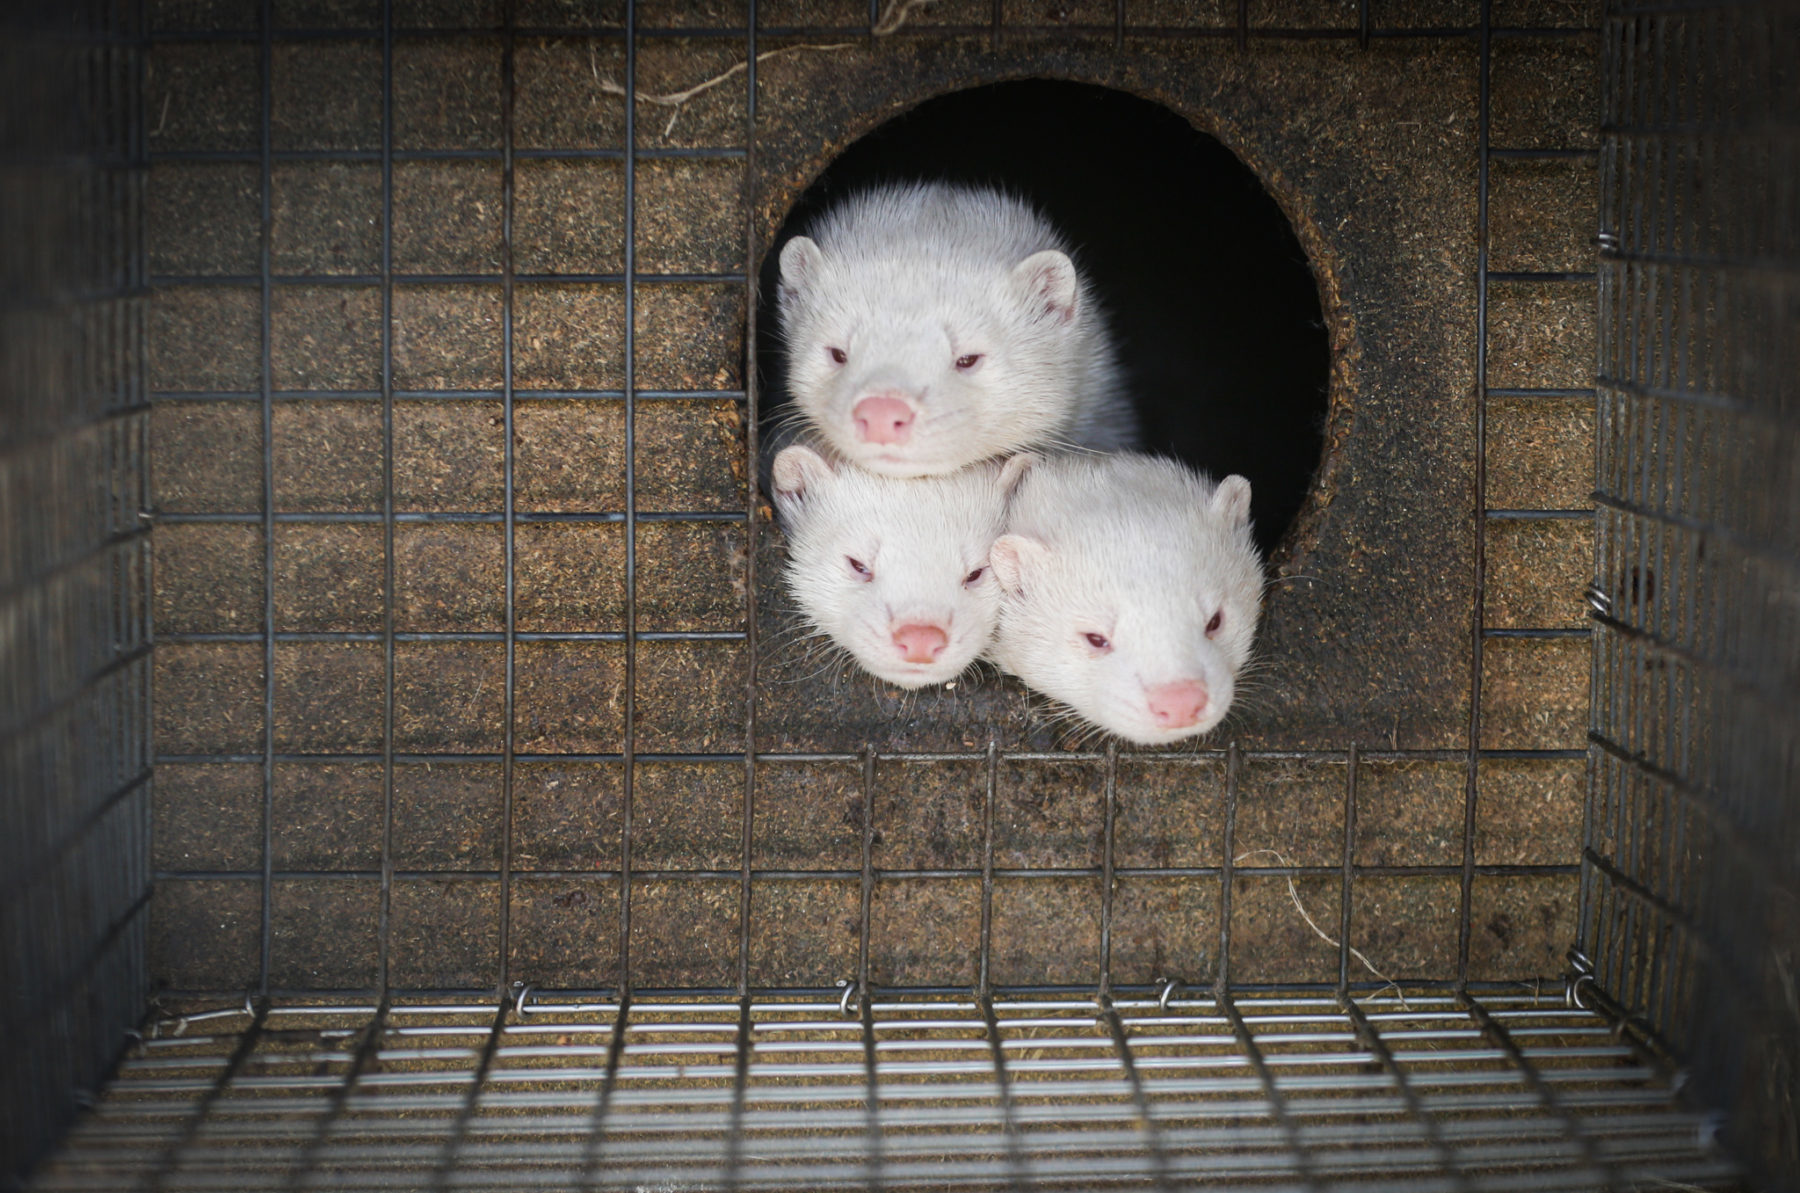 MINKS – FUR FARM